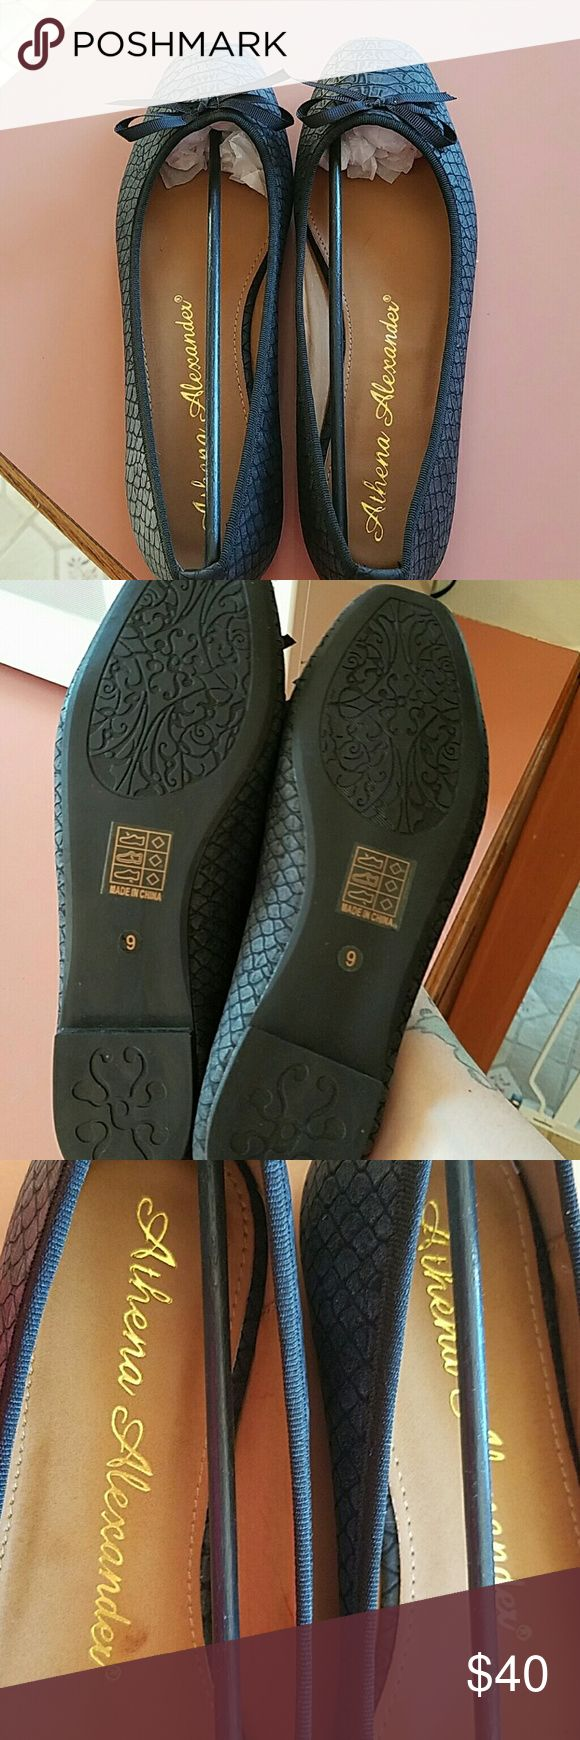 Athena Alexander Brand new beautiful black slip on square ballet flats Athena Alexander  Shoes Flats & Loafers